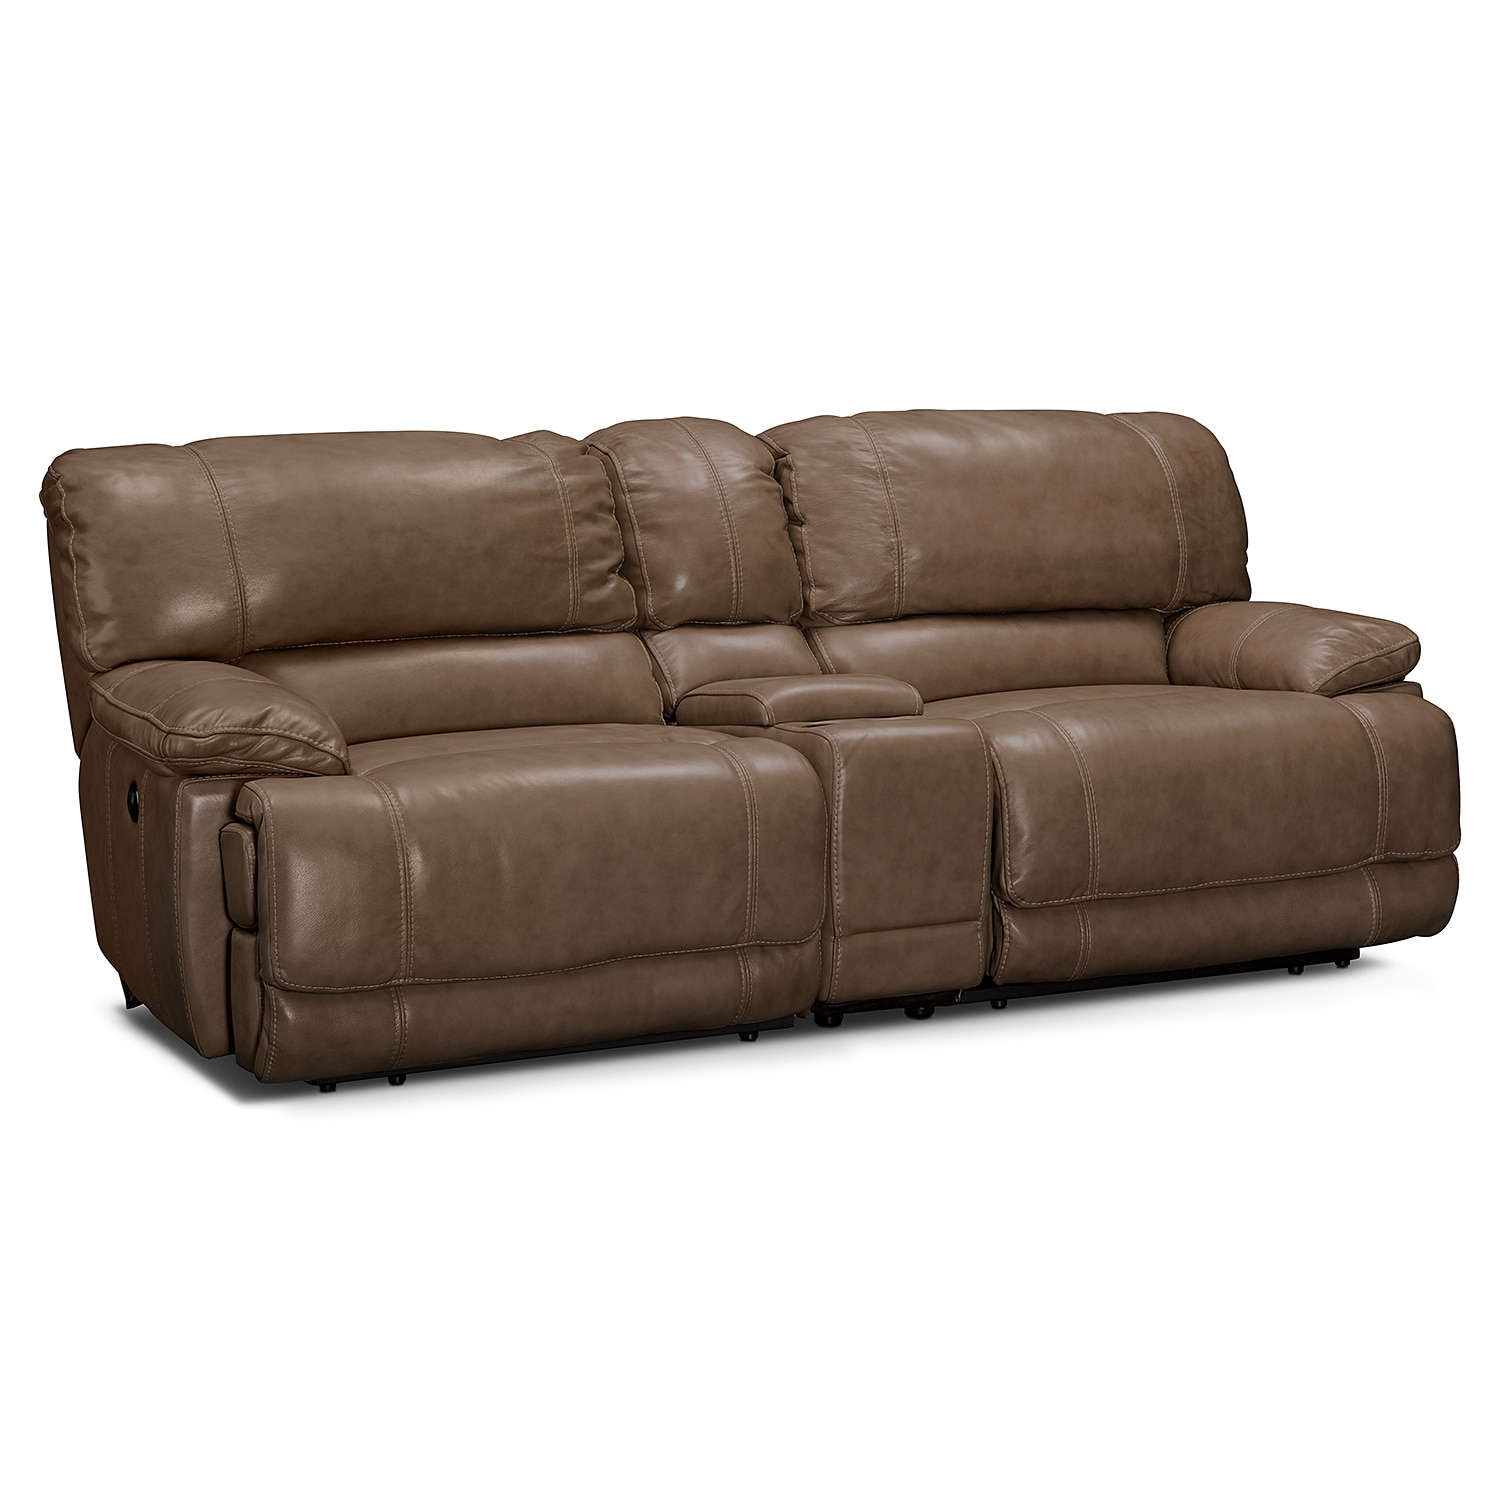 St Malo Power Reclining Sofa With Console Taupe Value